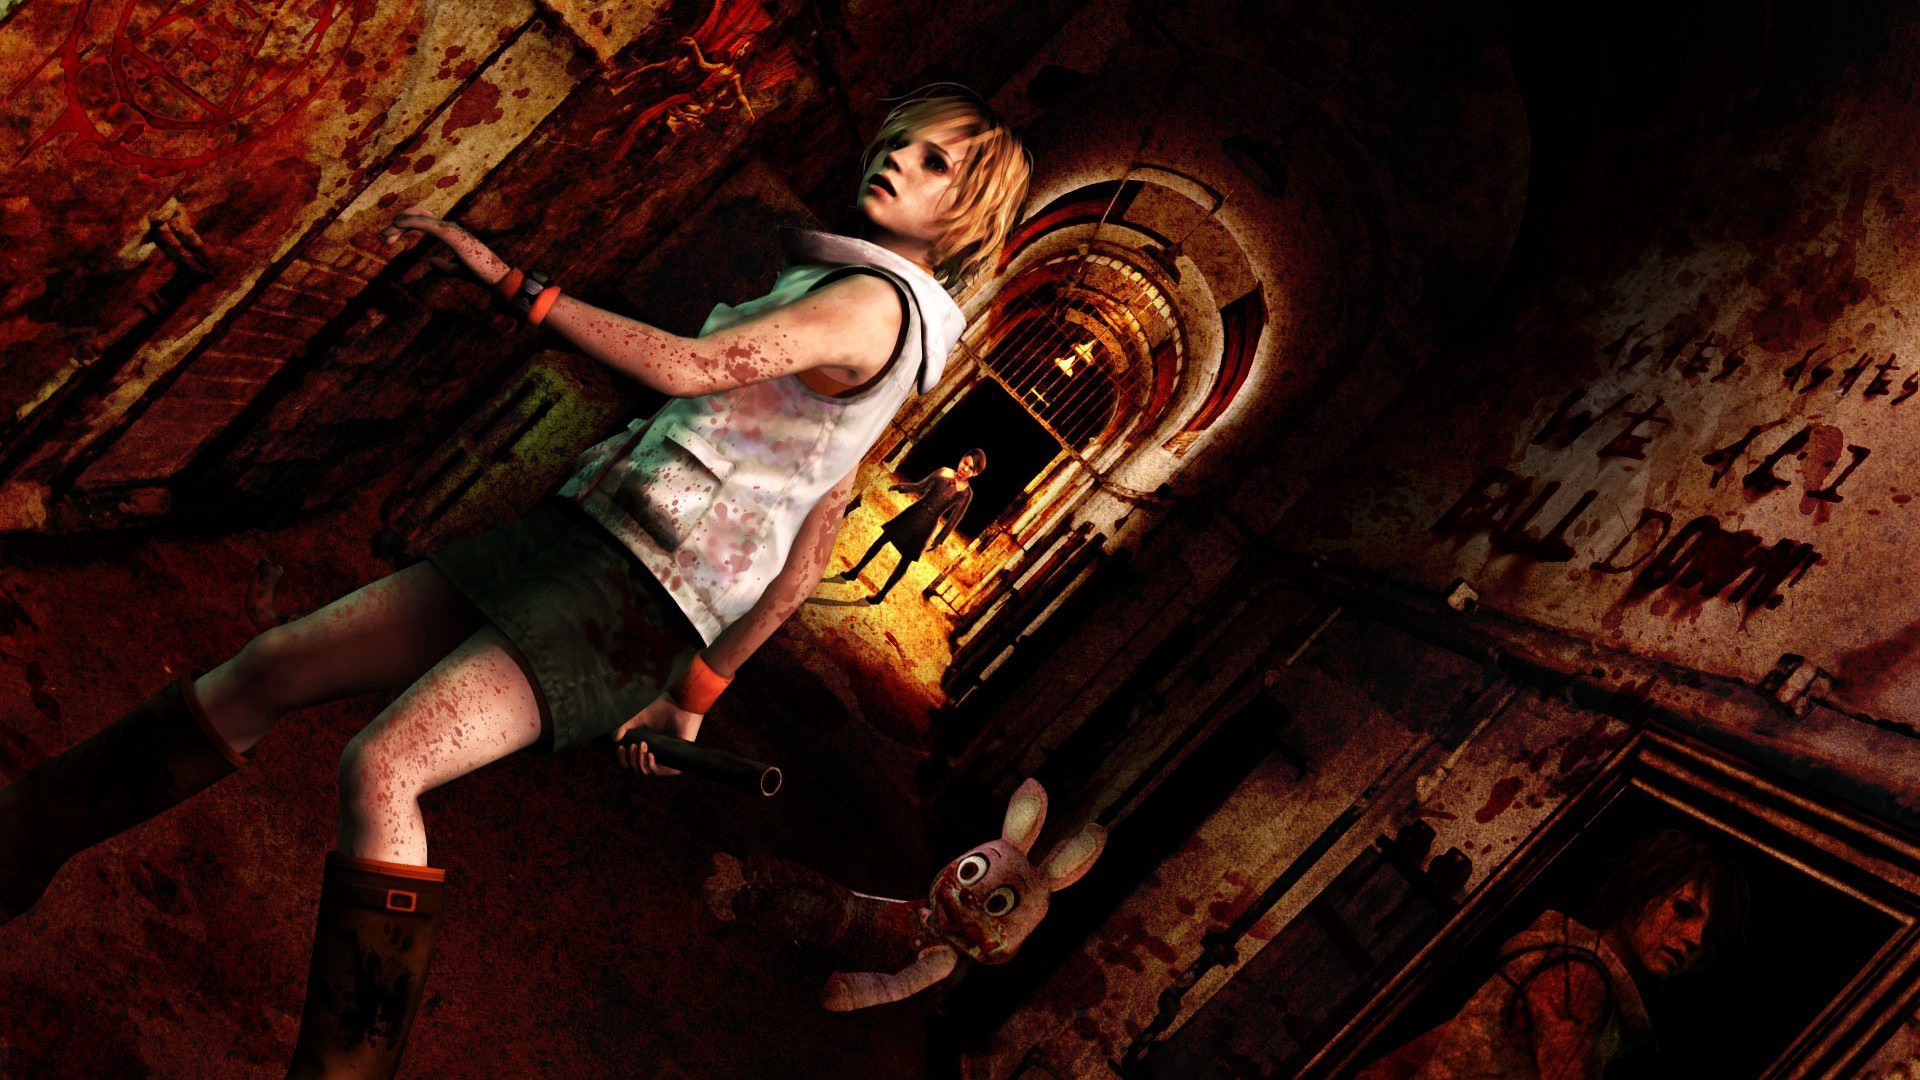 Silent Hill Failure Of The Gods This Article Is Re Posted And